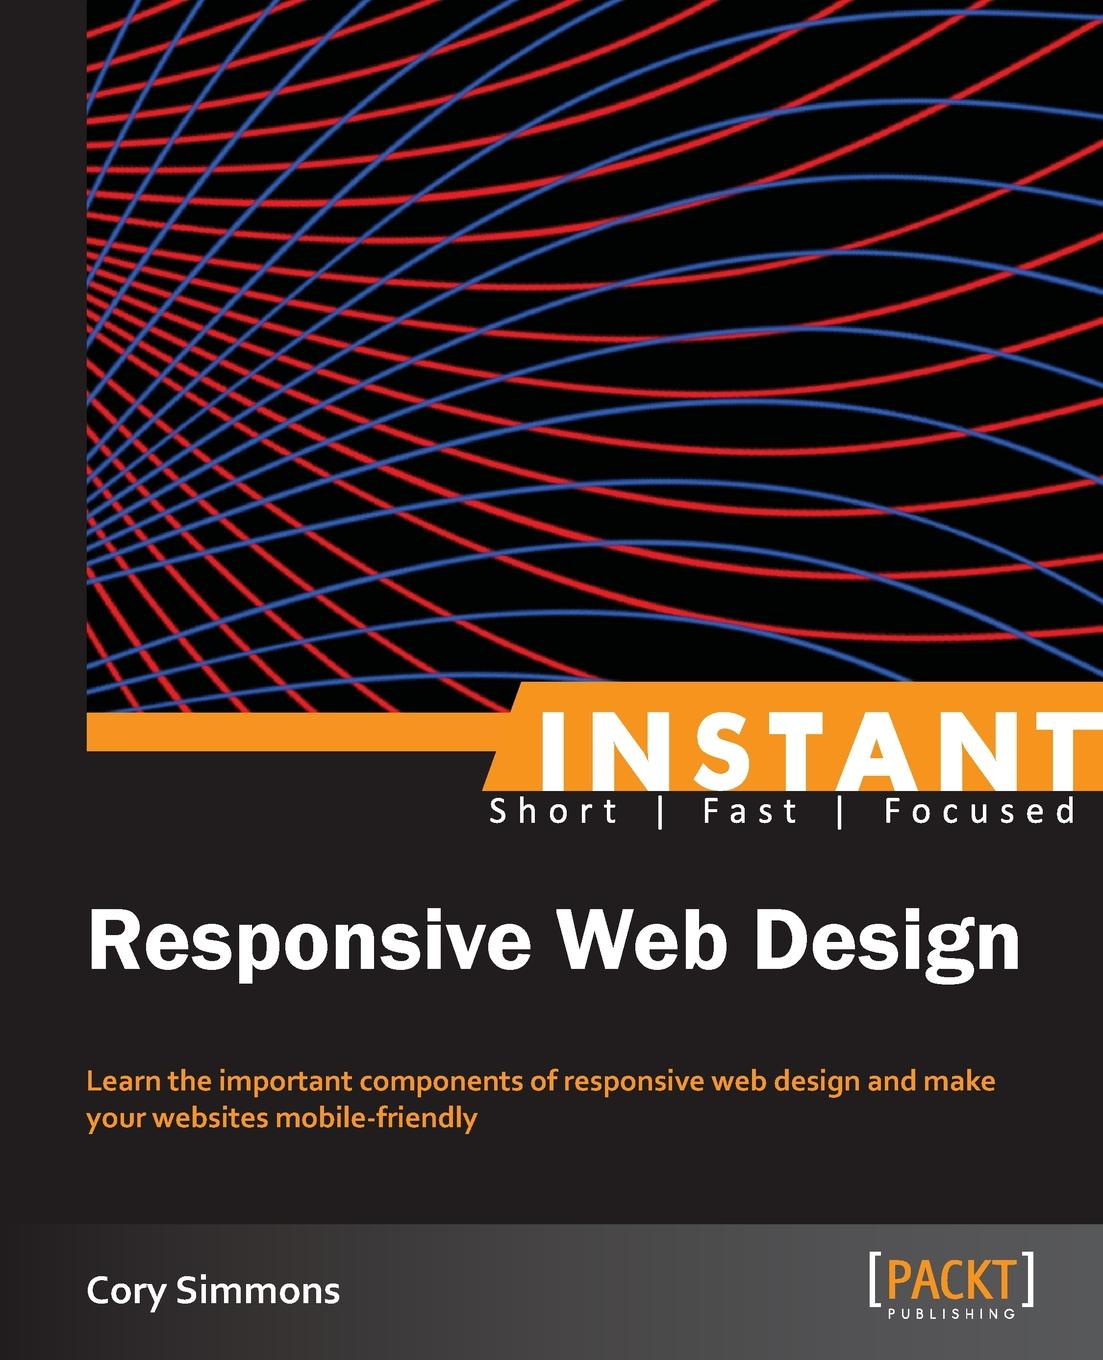 Cory Simmons Instant Responsive Web Design foundation web design